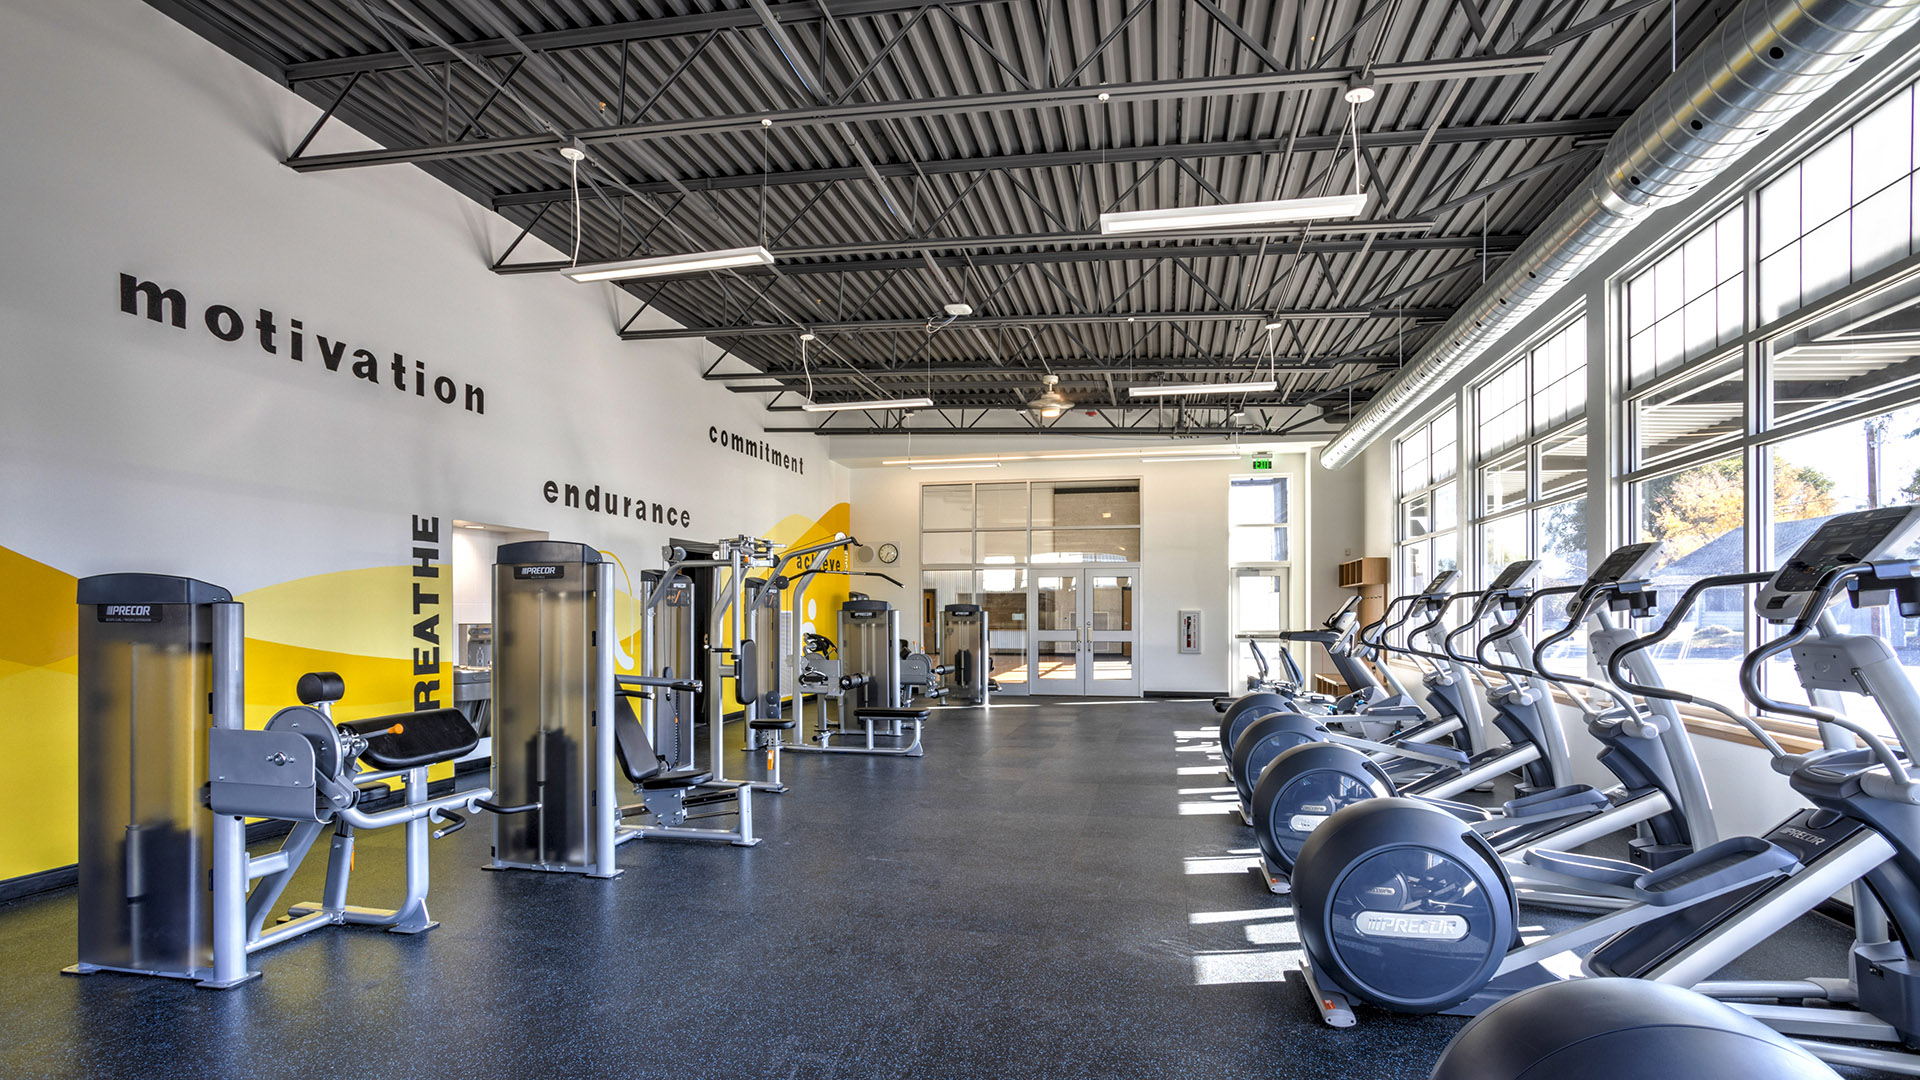 Echo K12 School Fitness Room